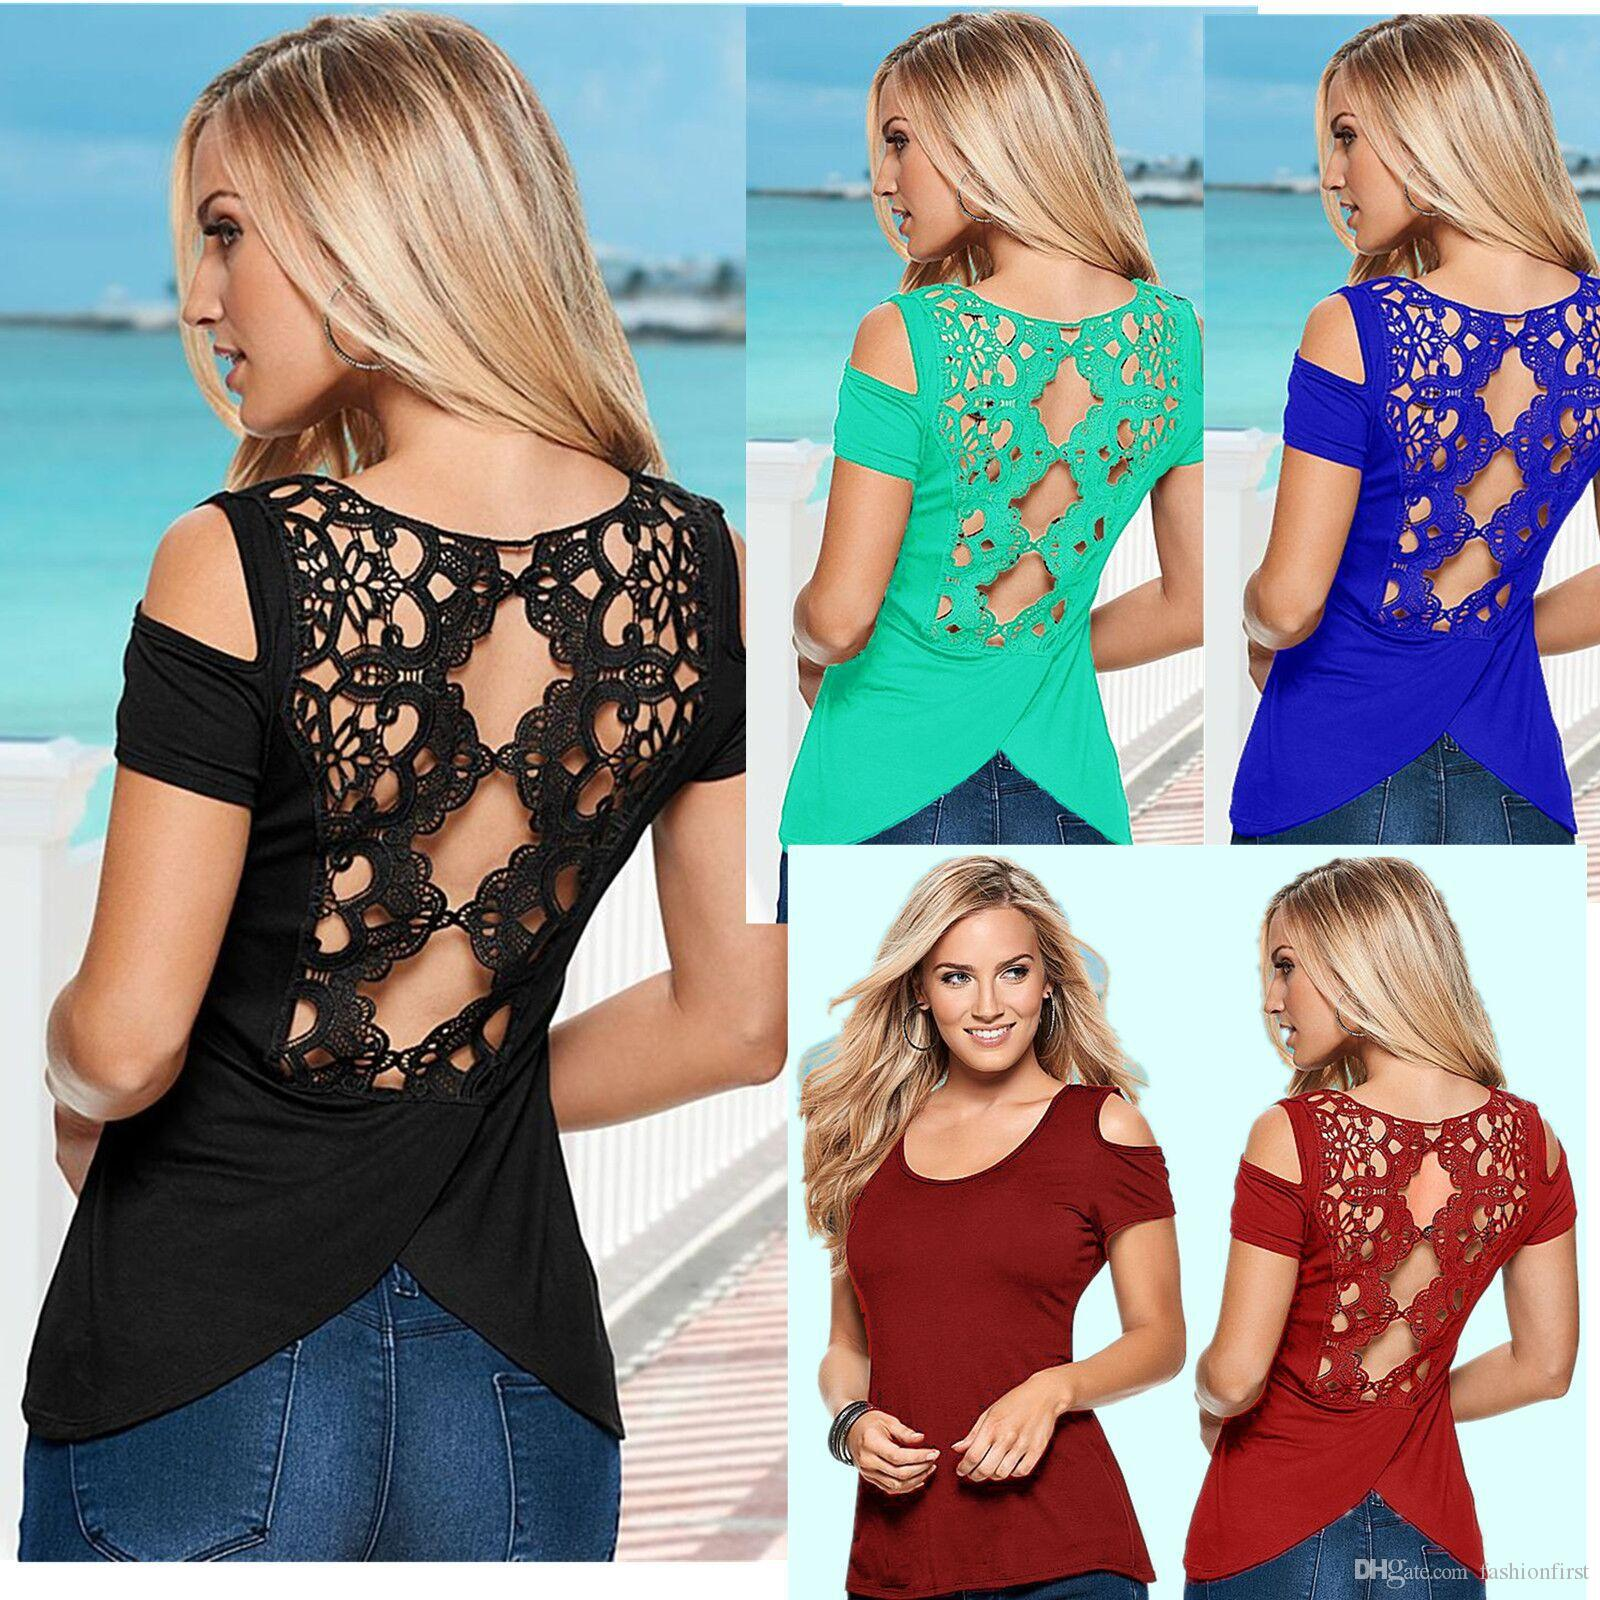 c068a7c230e Plus Size Back Lace Blusas Summer Elegant Women T Shirt Lace Crochet Short  Sleeve Cold Shoulder Split T Shirt Tee Shirt Shop Online One T Shirt A Day  From ...